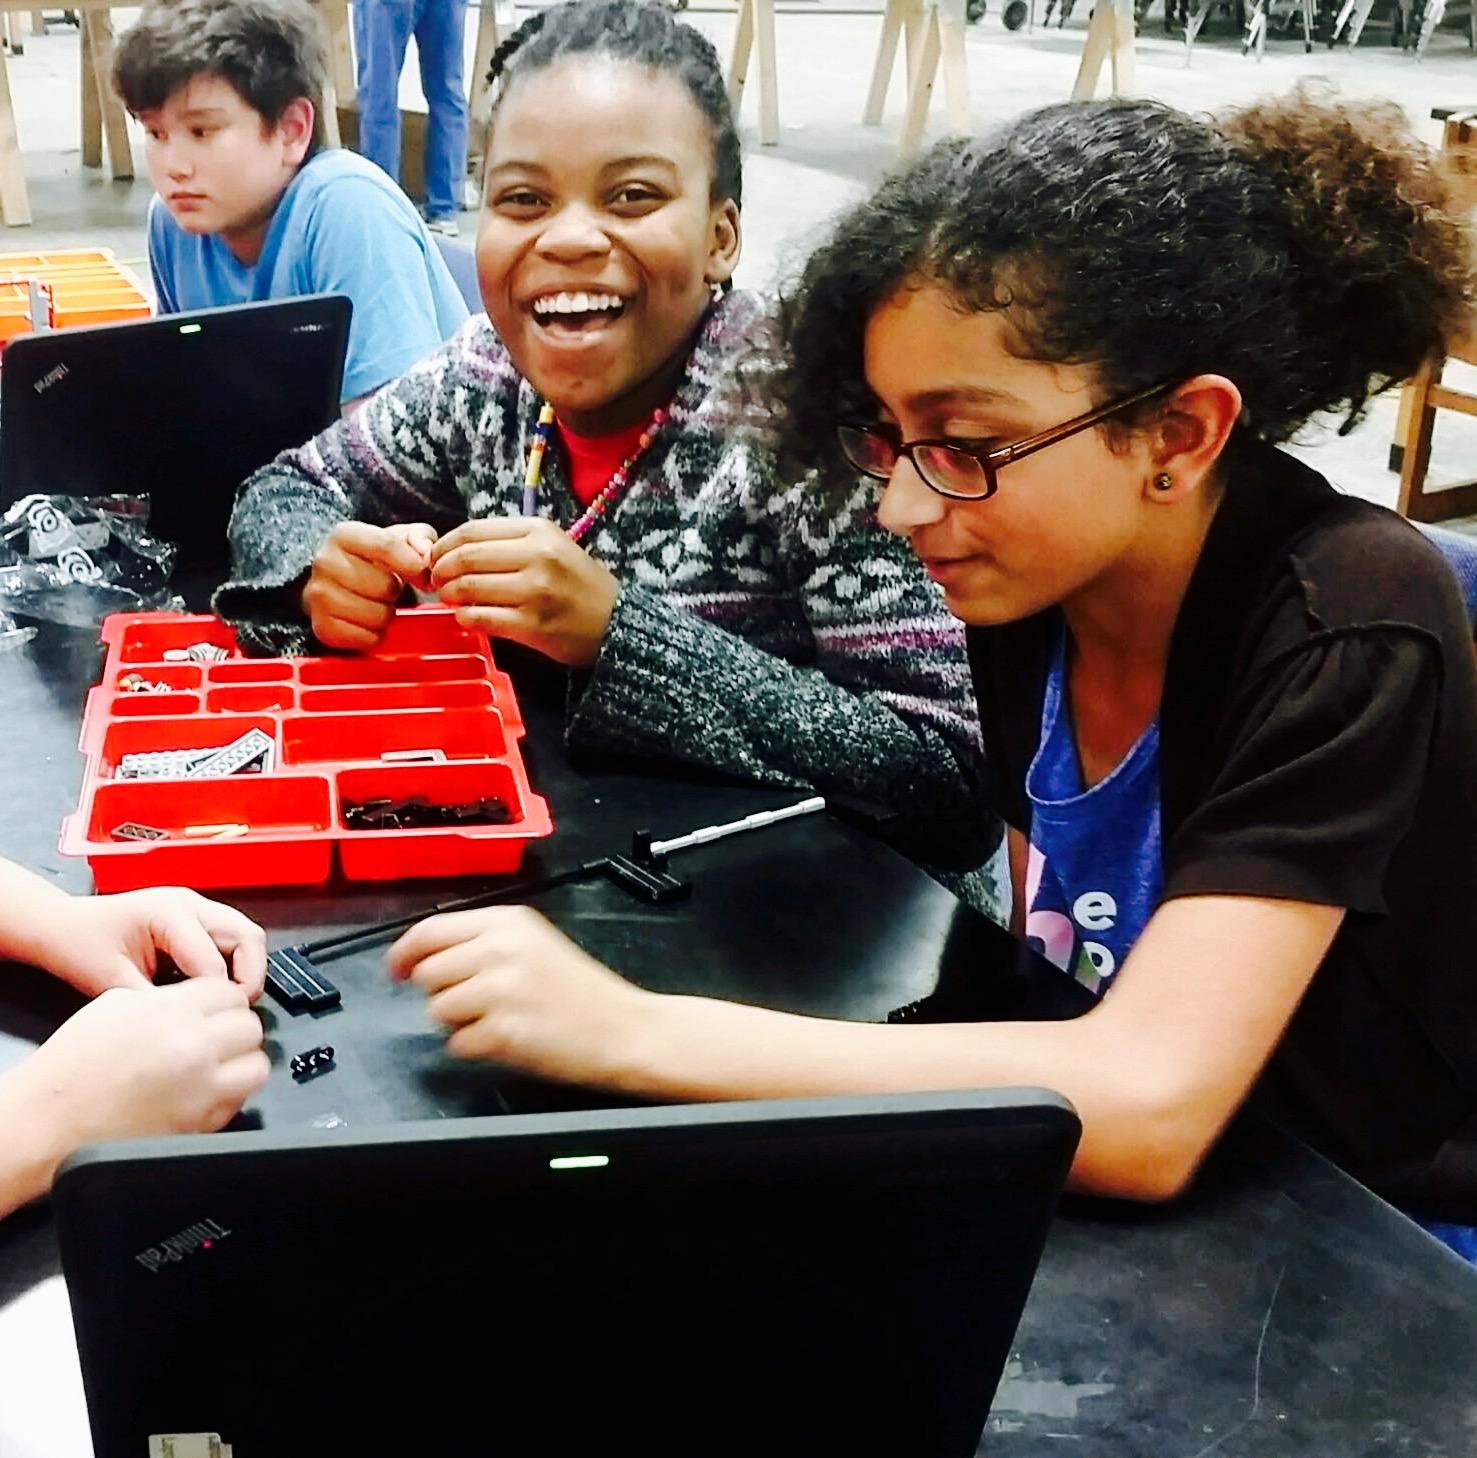 What Is Stem At School: Dayton Regional STEM School News And Events: 13 Signs That